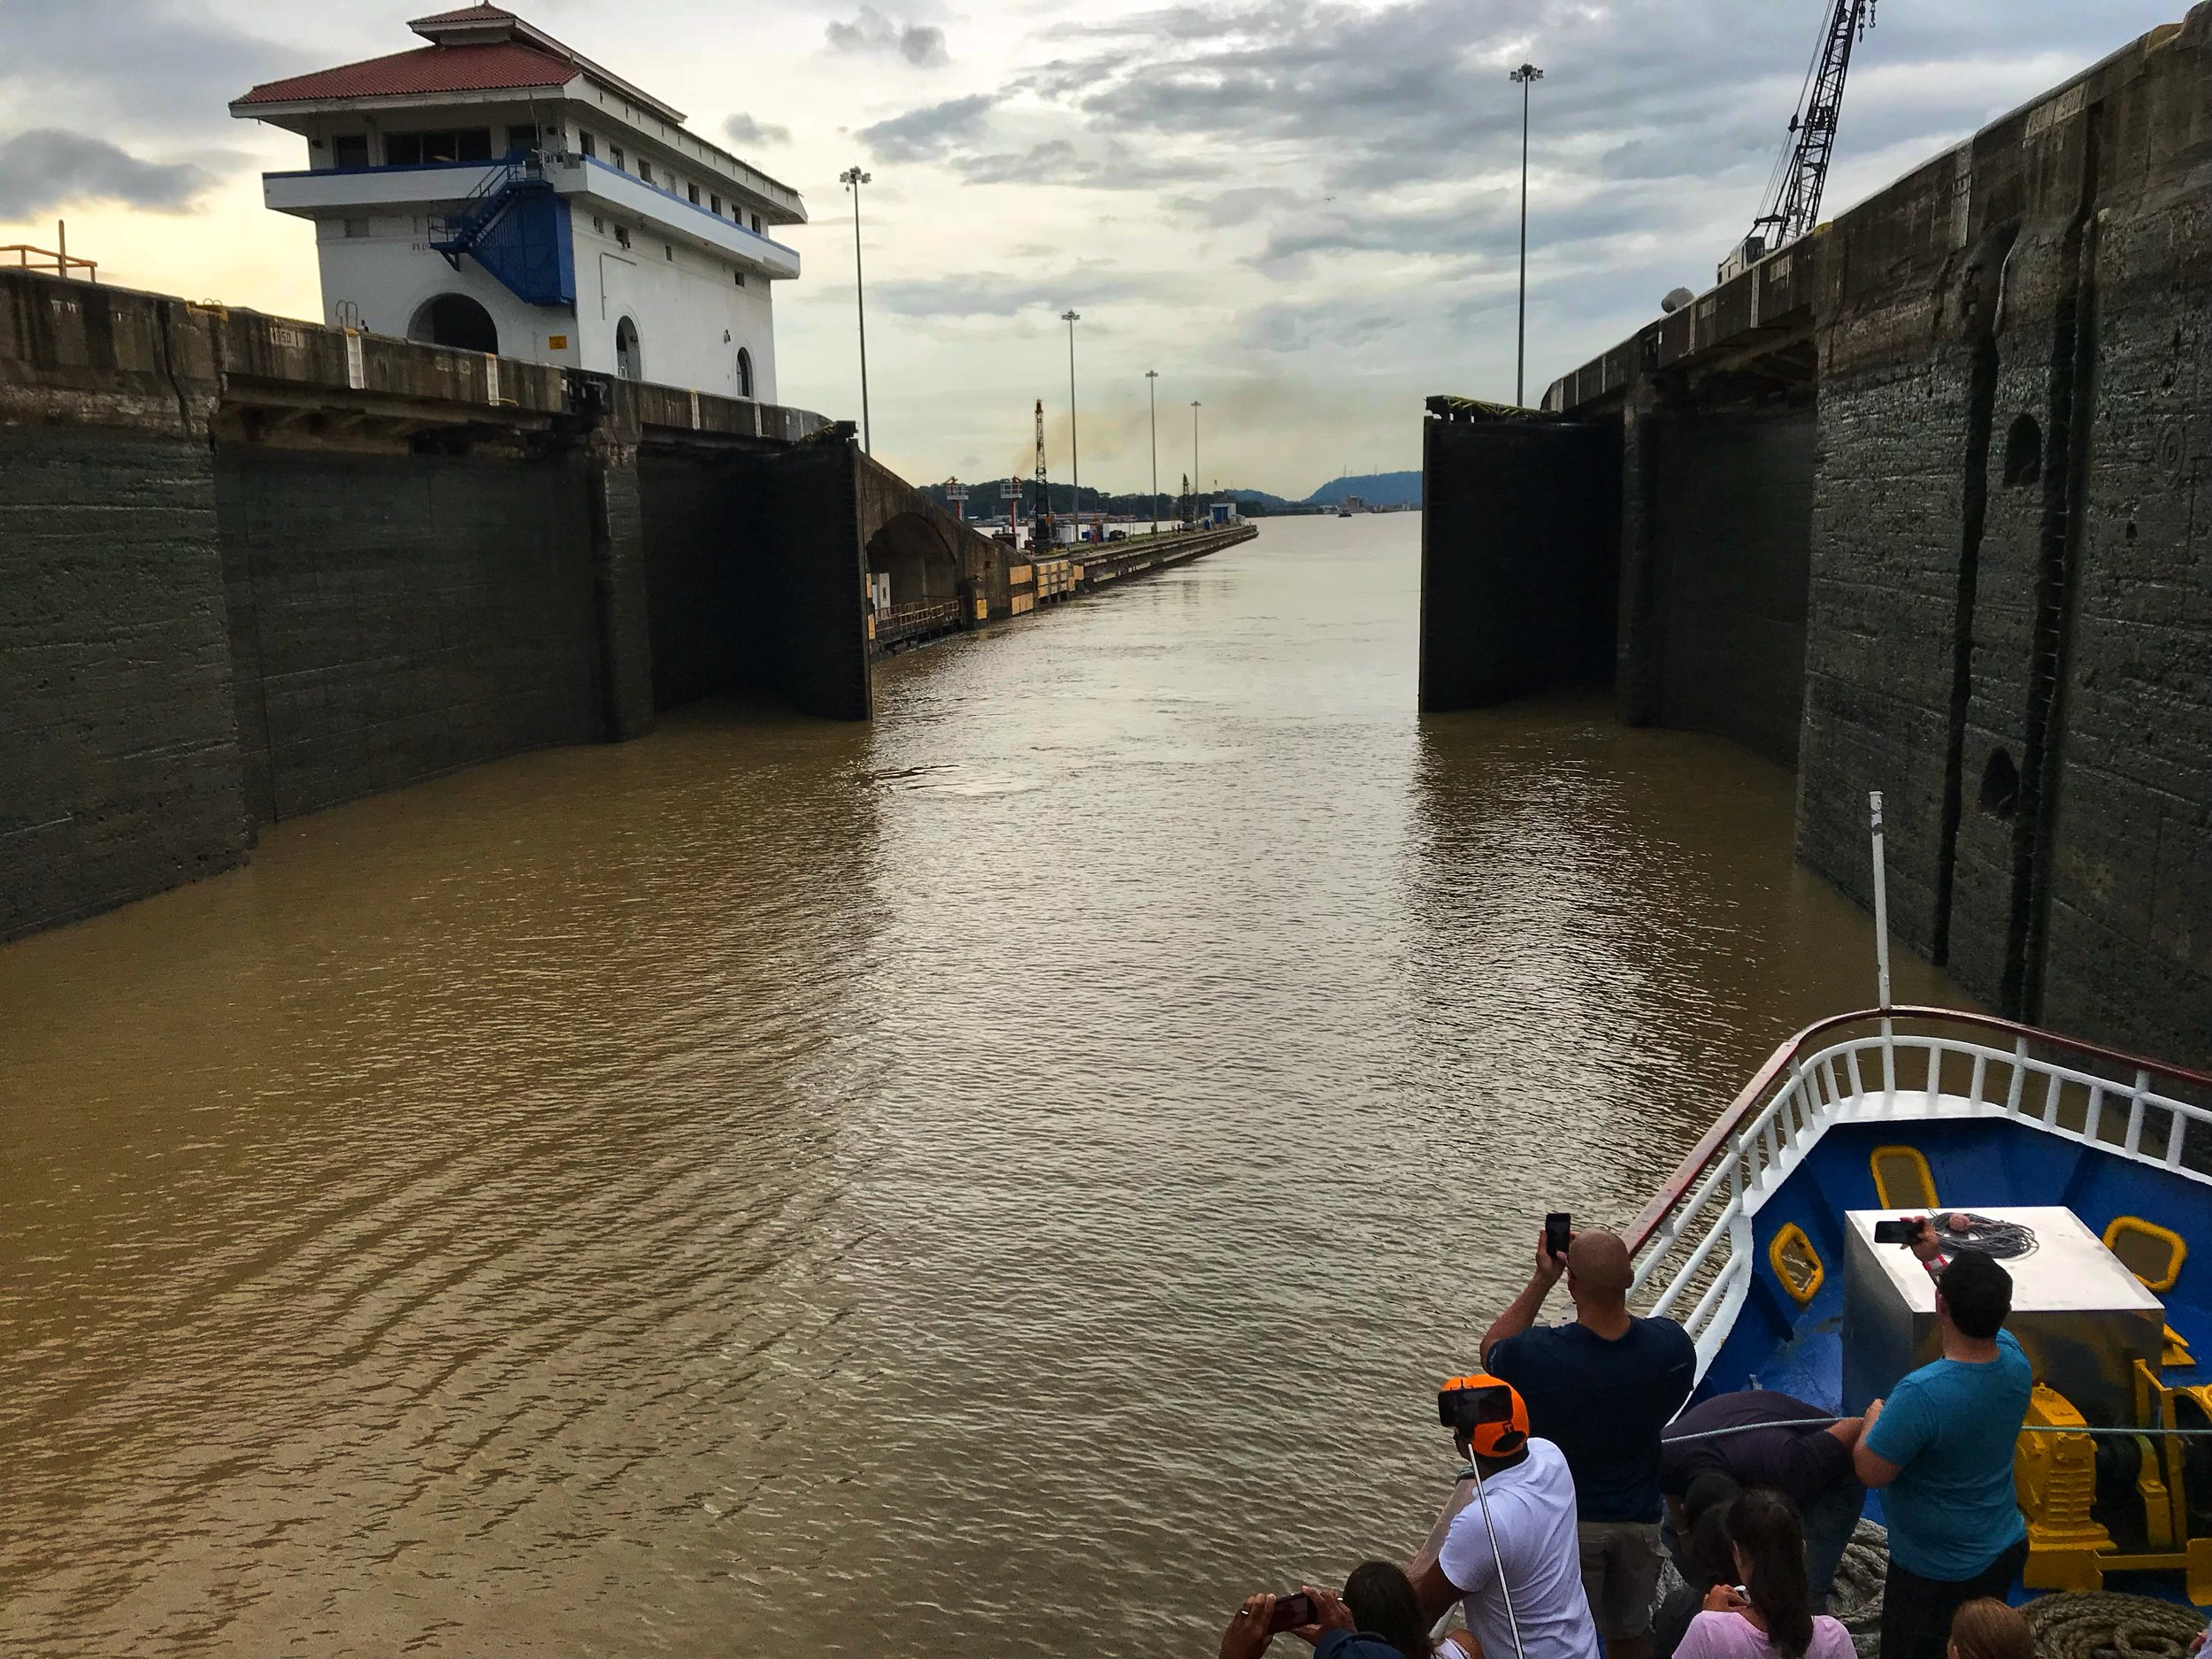 The opening of the Miraflores Locks